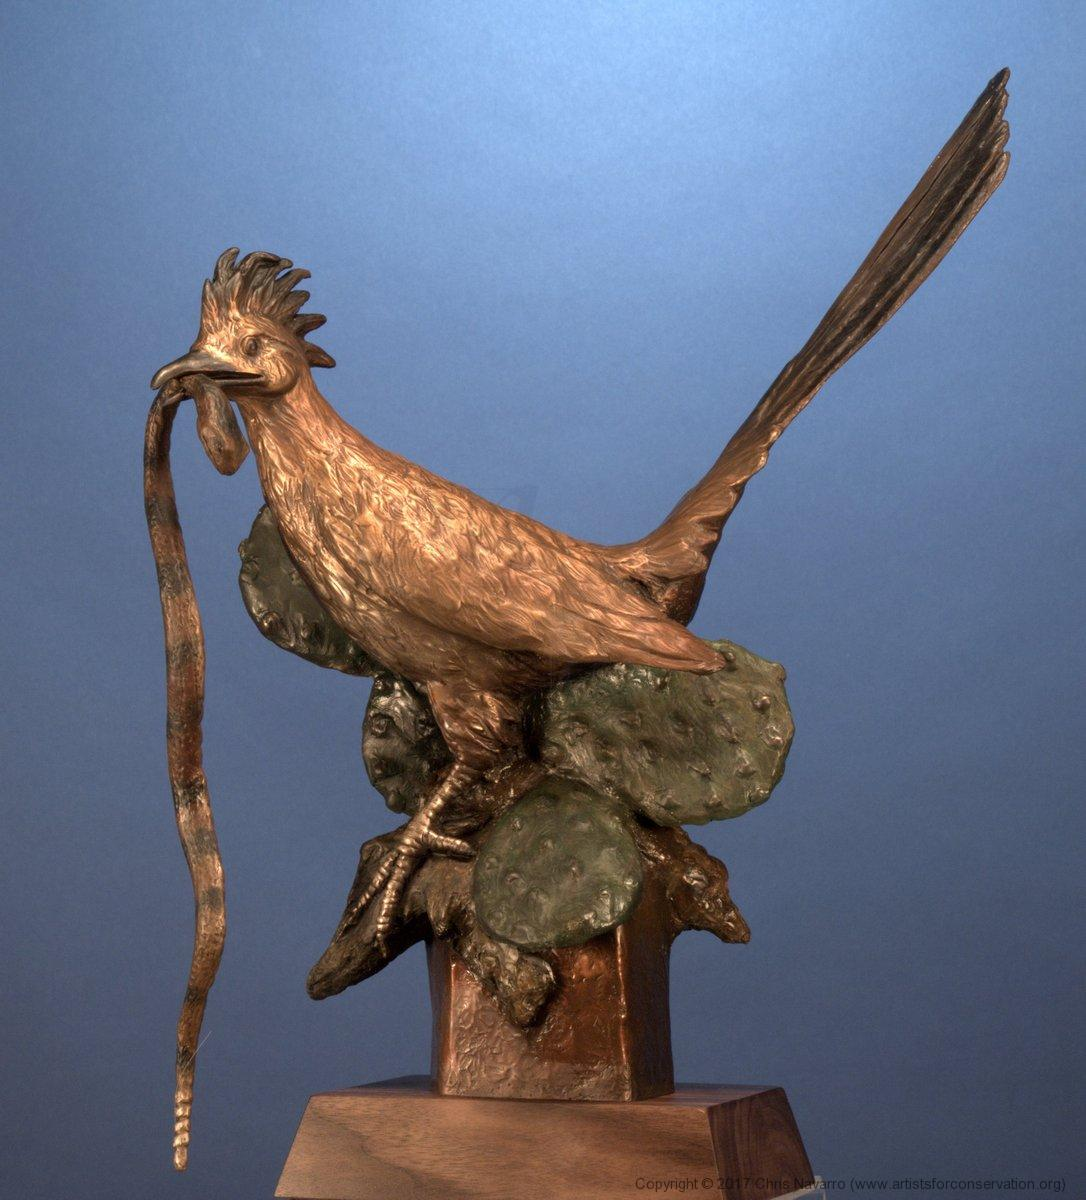 | Sculpture by Chris Navarro | Artists for Conservation